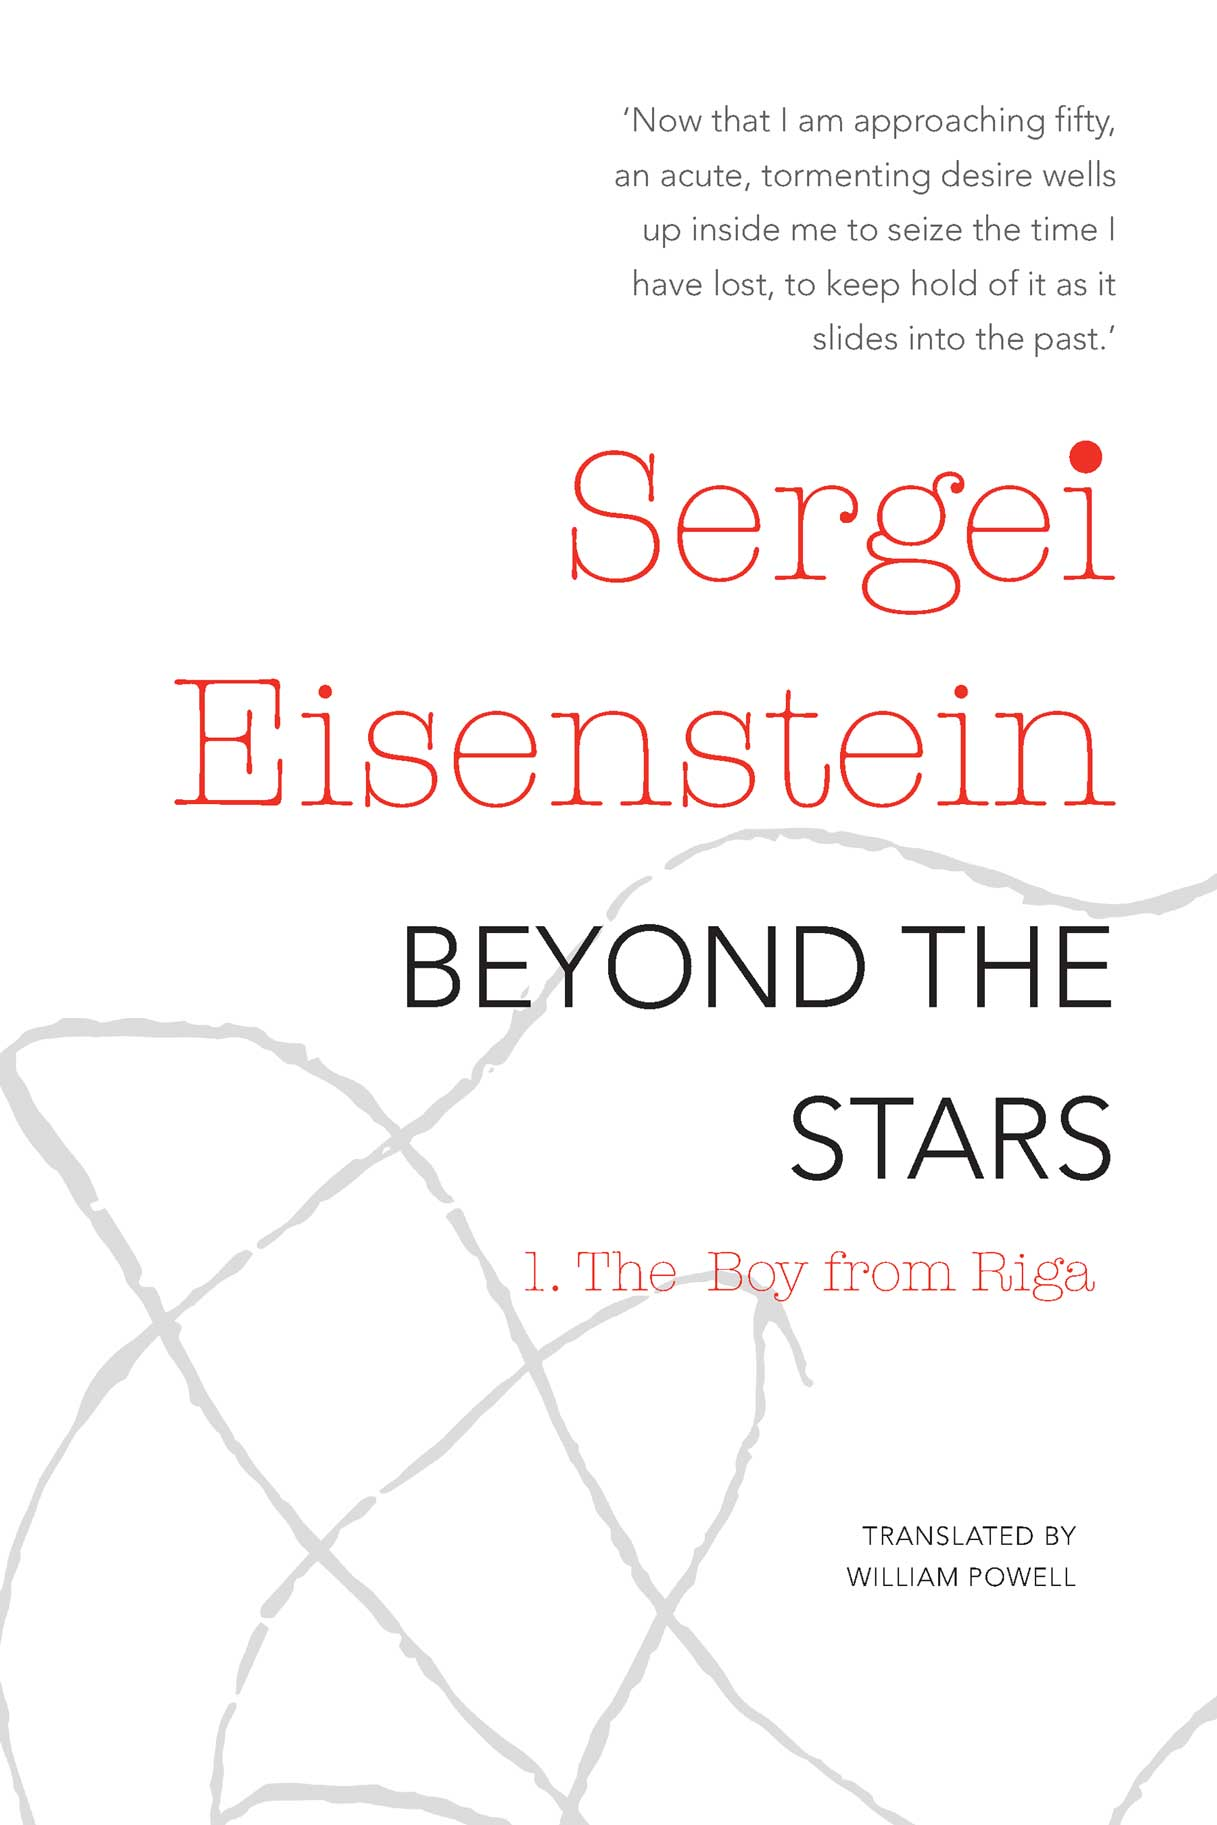 Beyond the Stars, Part 1 by SERGEI EISENSTEIN| Seagull Books